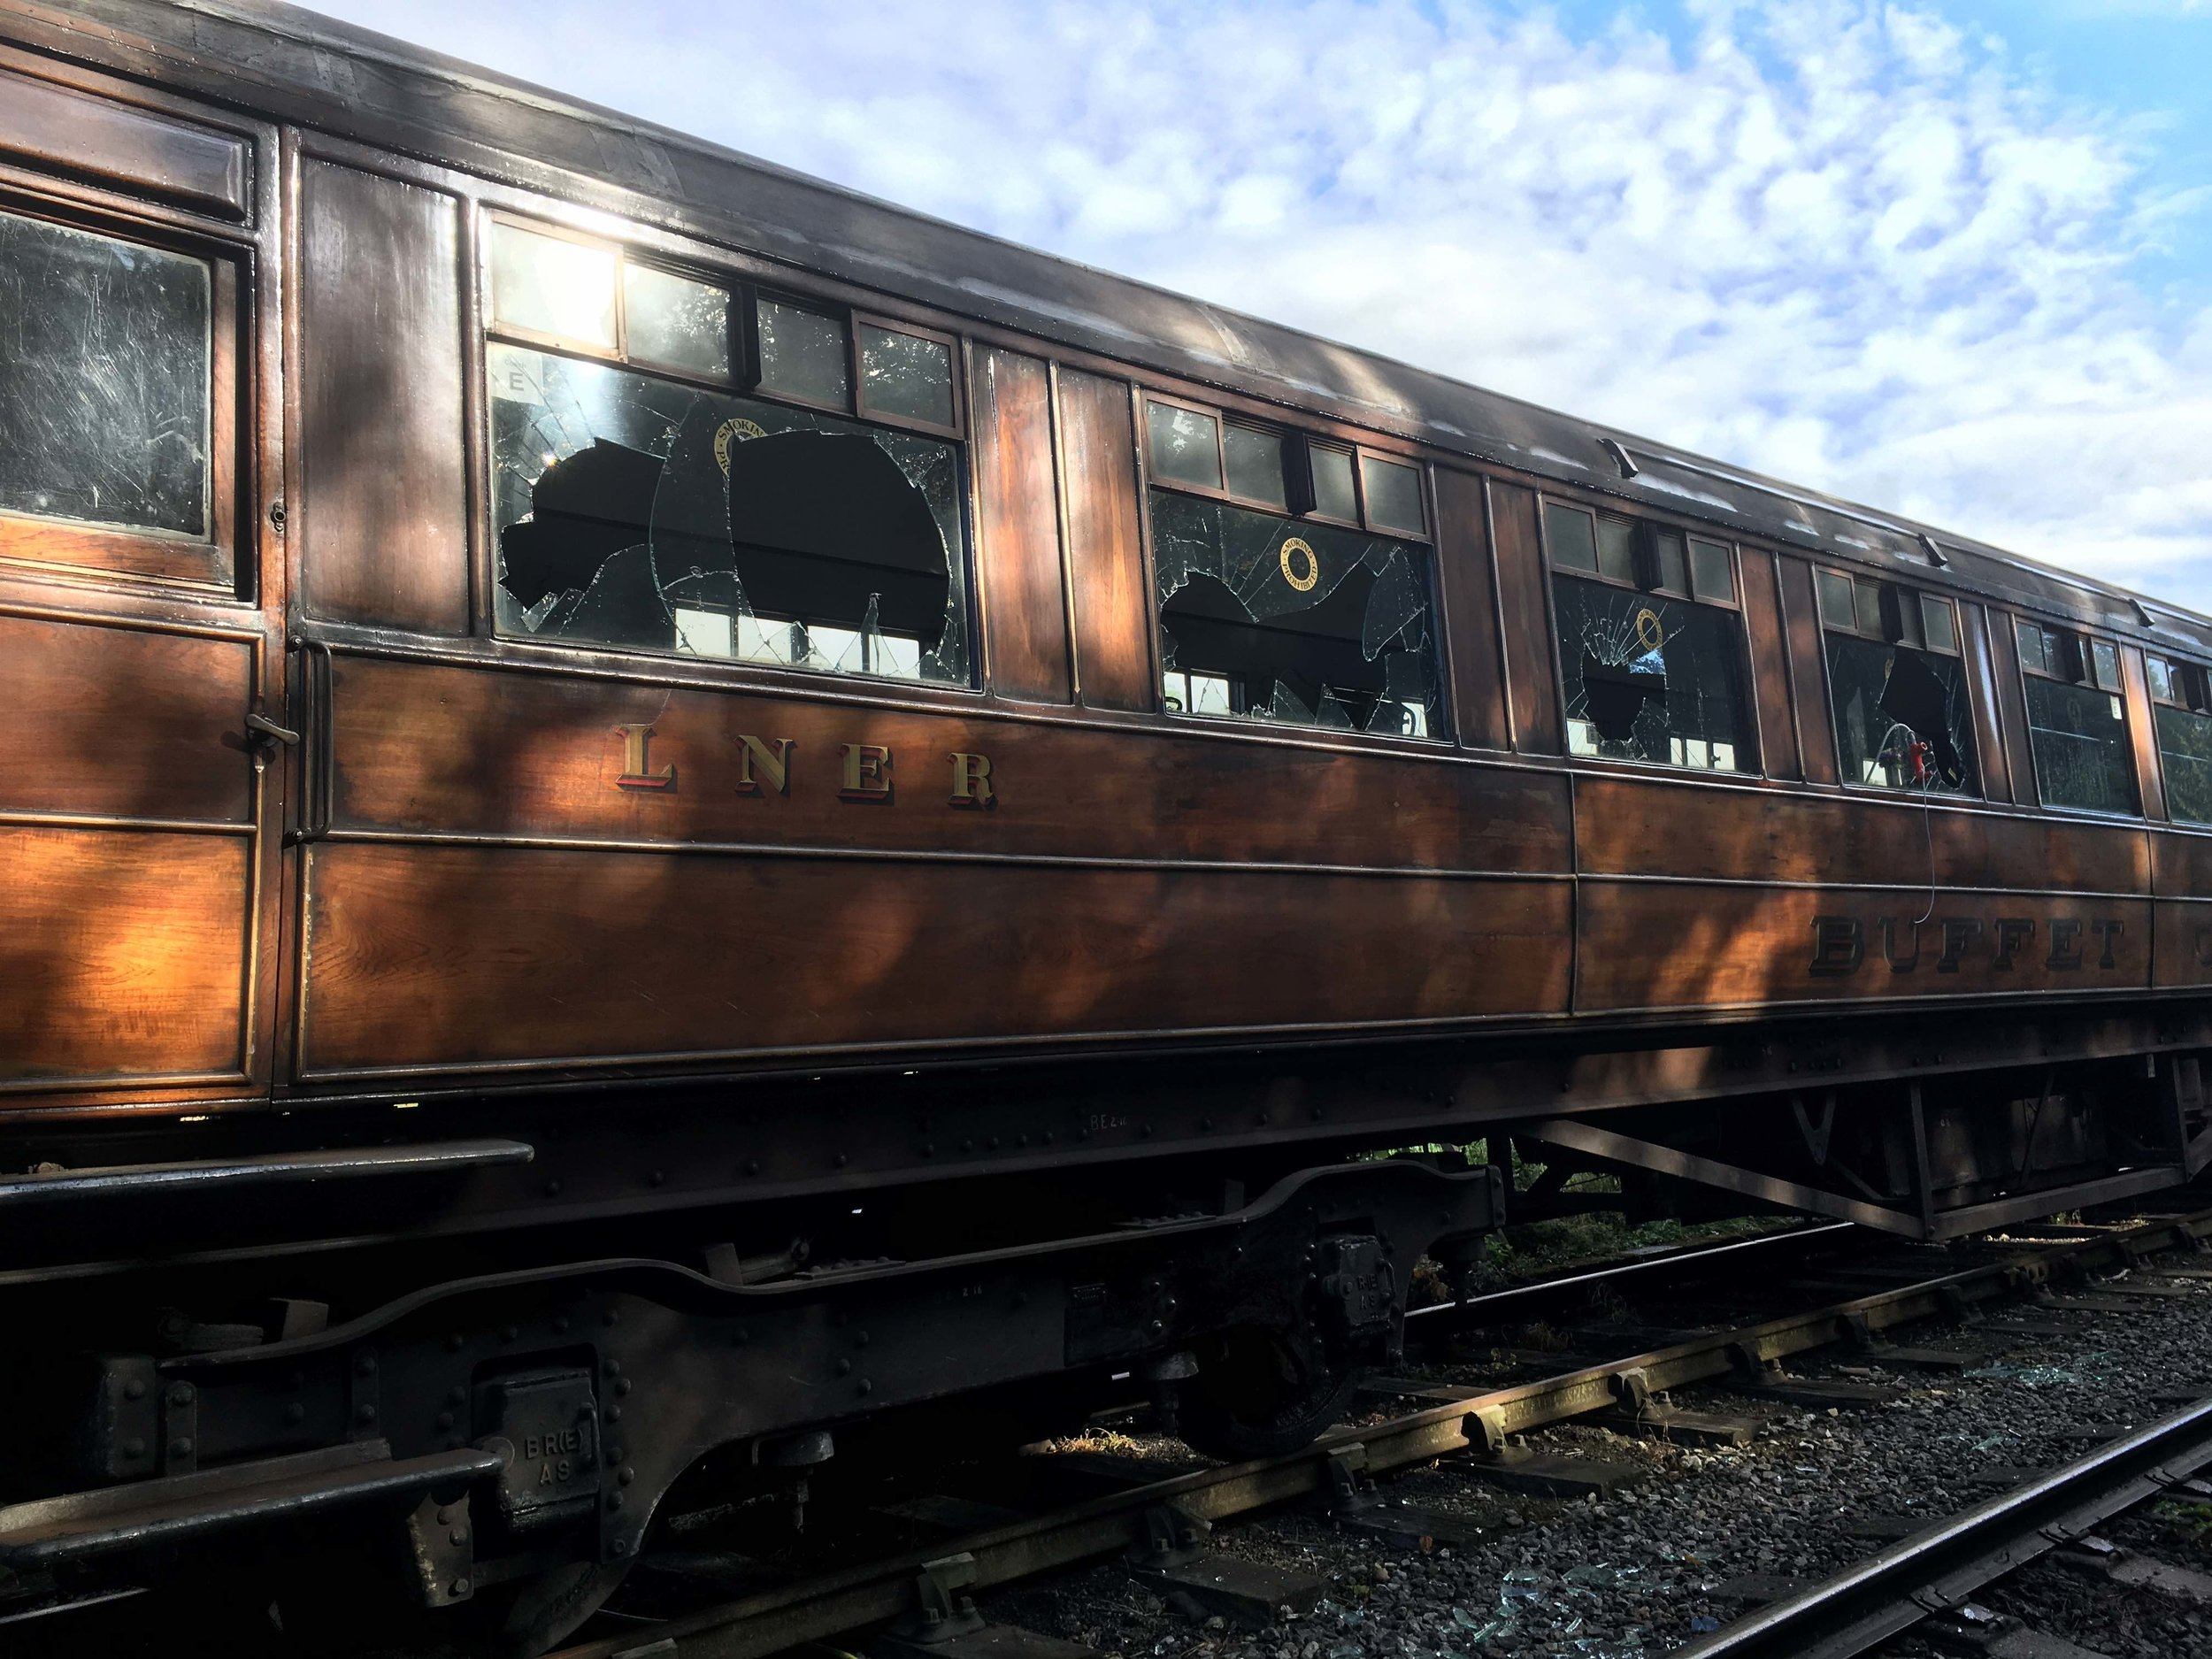 Windows, amongst other items, on the NYMR's LNER eight-coach teak rake were smashed by vandals on July 22. NYMR